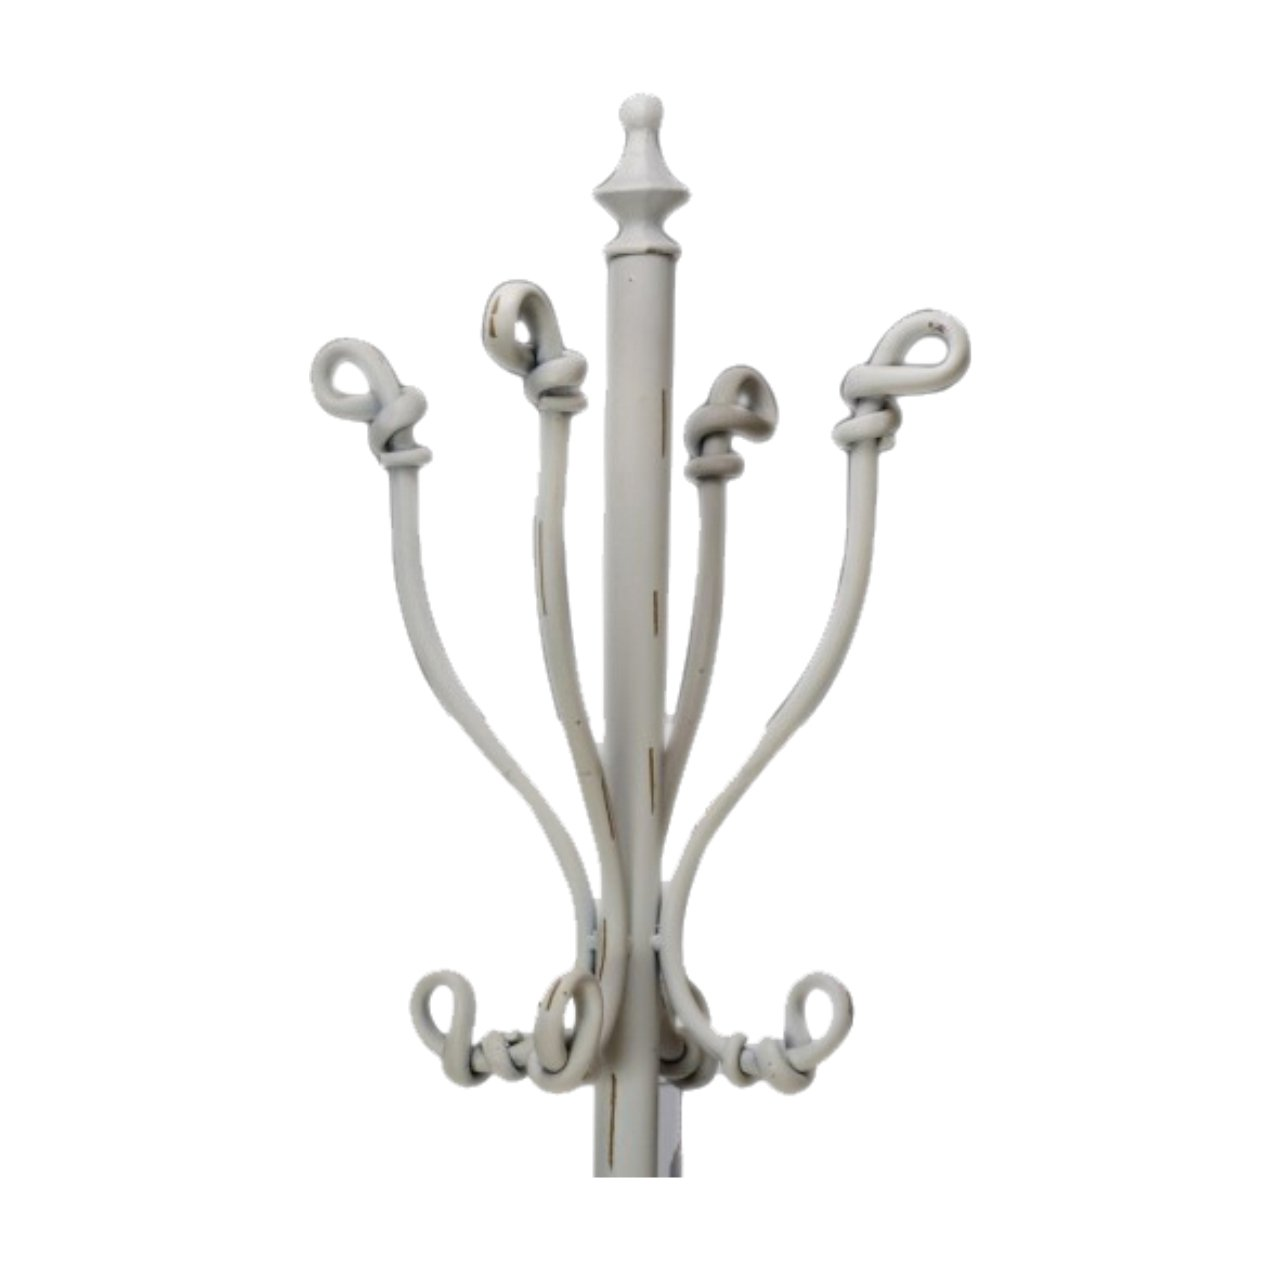 The Knot Scrolled Distressed Vintage Coat Hat Hanger Umbrella Stick Stand Handbag Rack - Cream